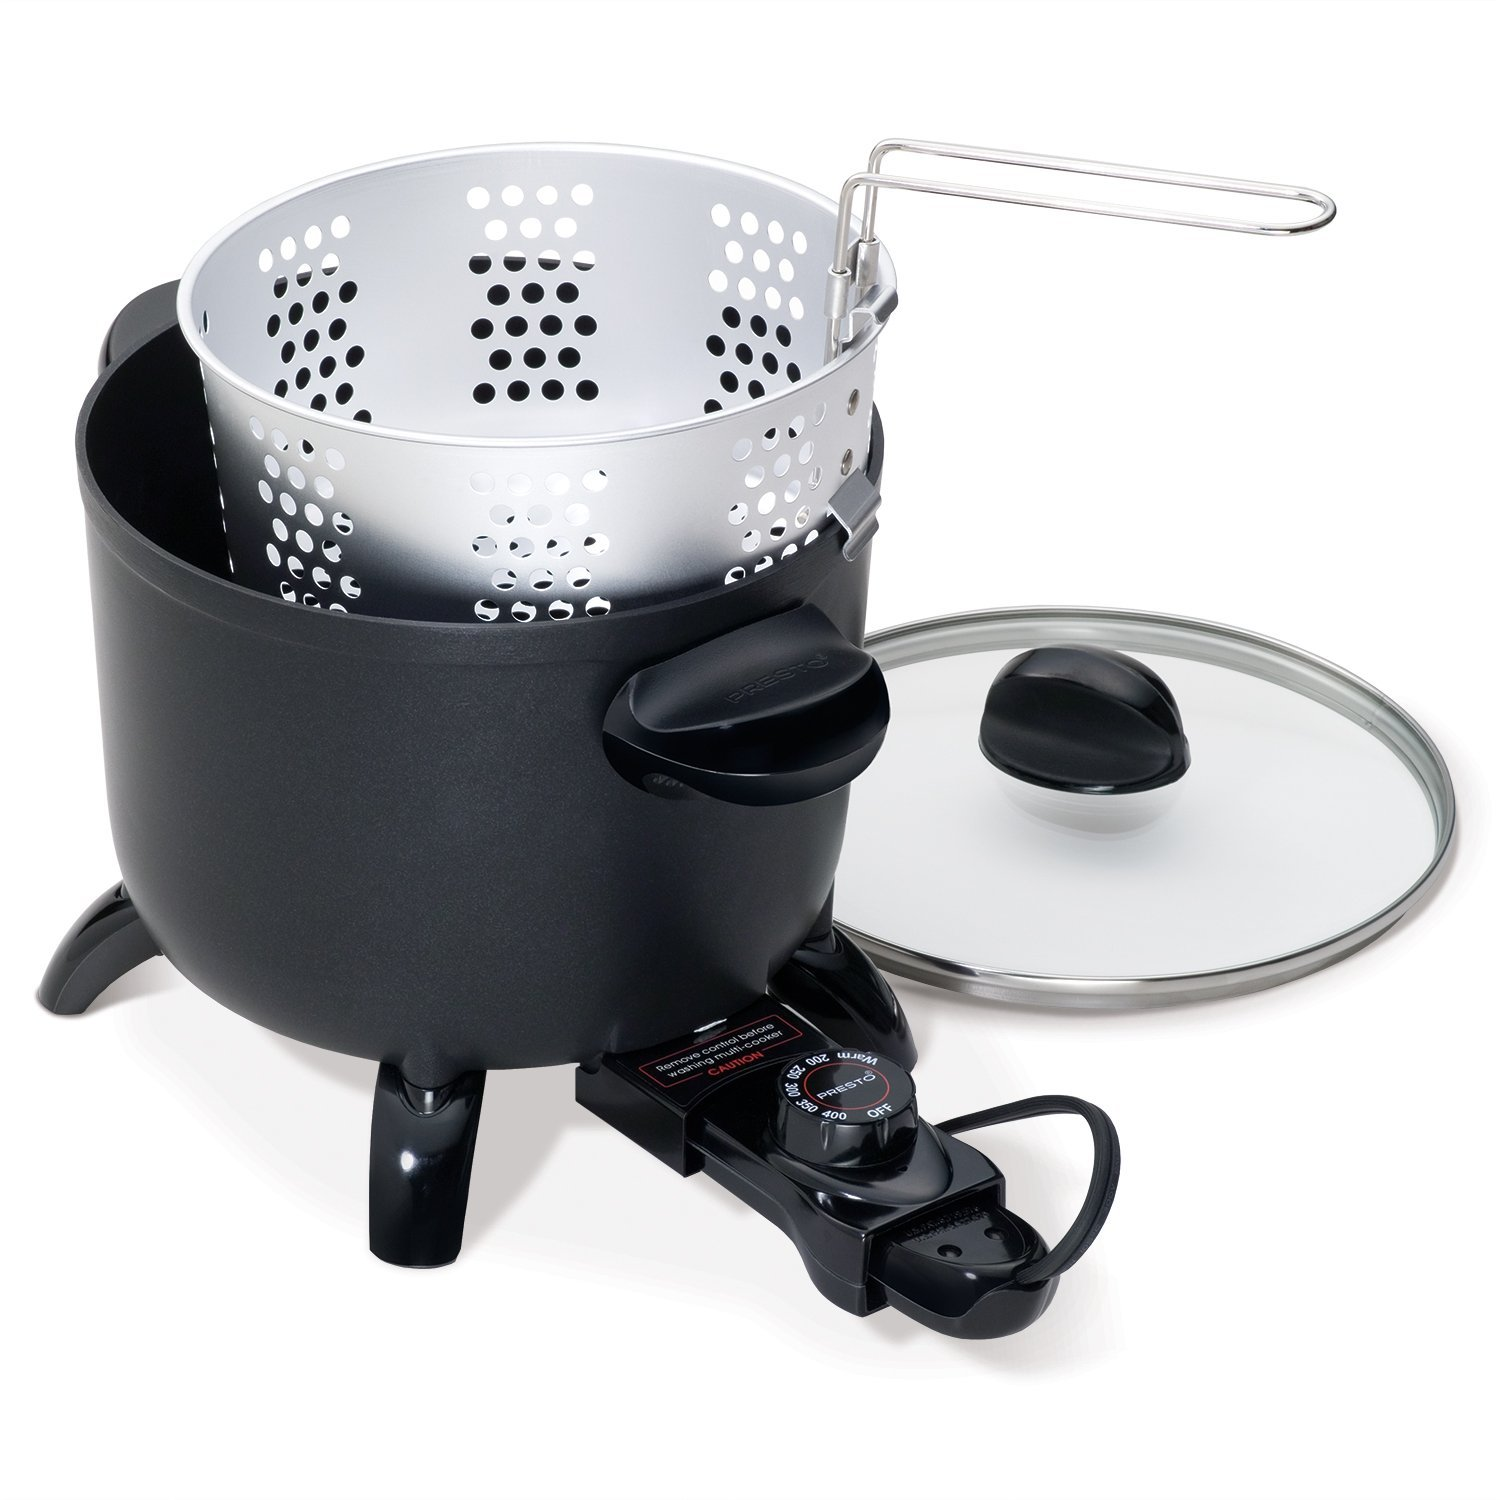 Deep Fryers – The Cookware Review